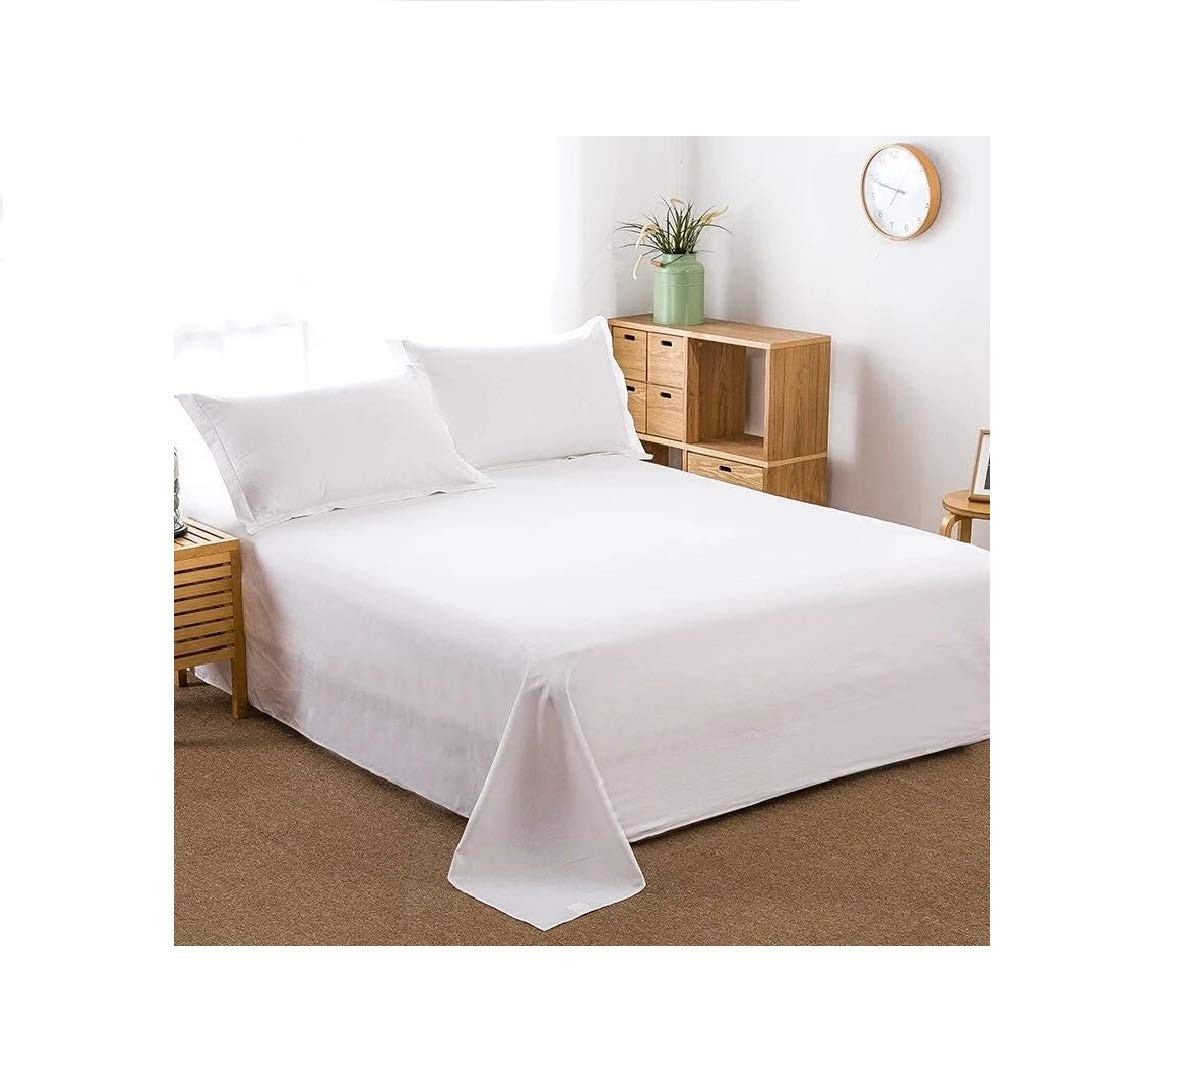 100% Cotton Flat Sheet Only- Superior Quality,Soft,Silky,Skin friendly,Breathable,Comfortable Bed Sheet (Twin, White) by Shentao